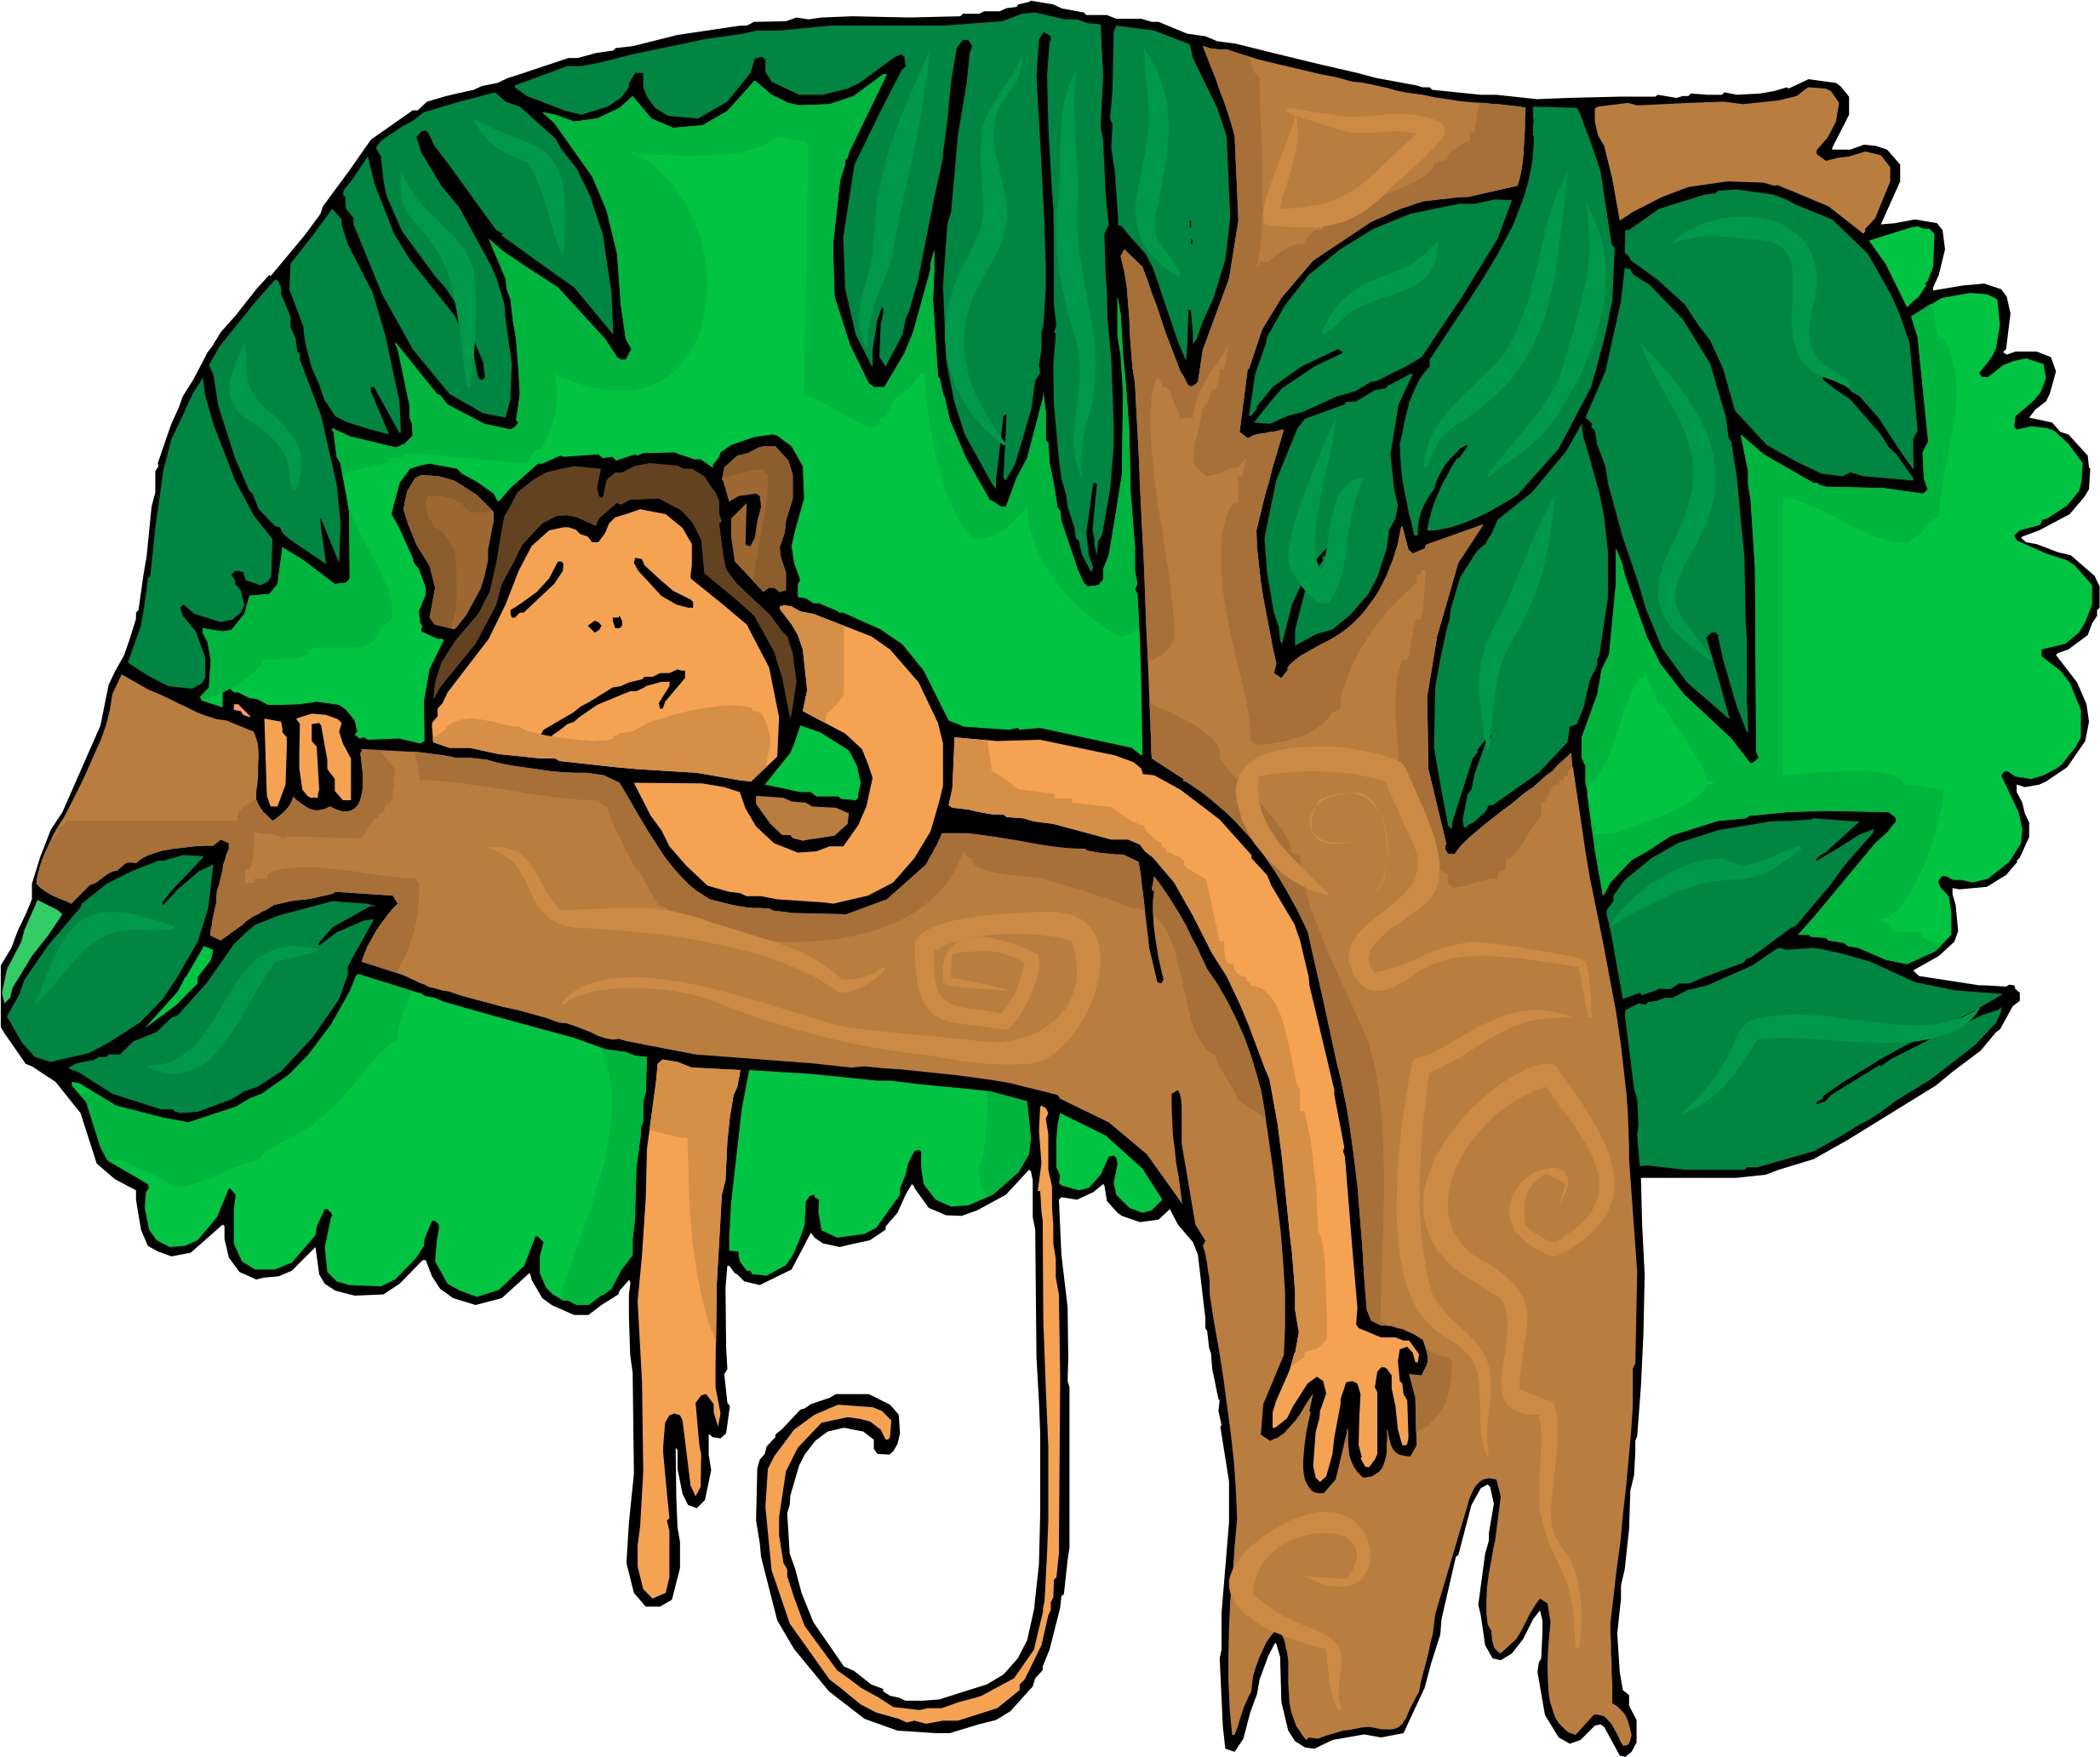 Monkey people in trees clipart.